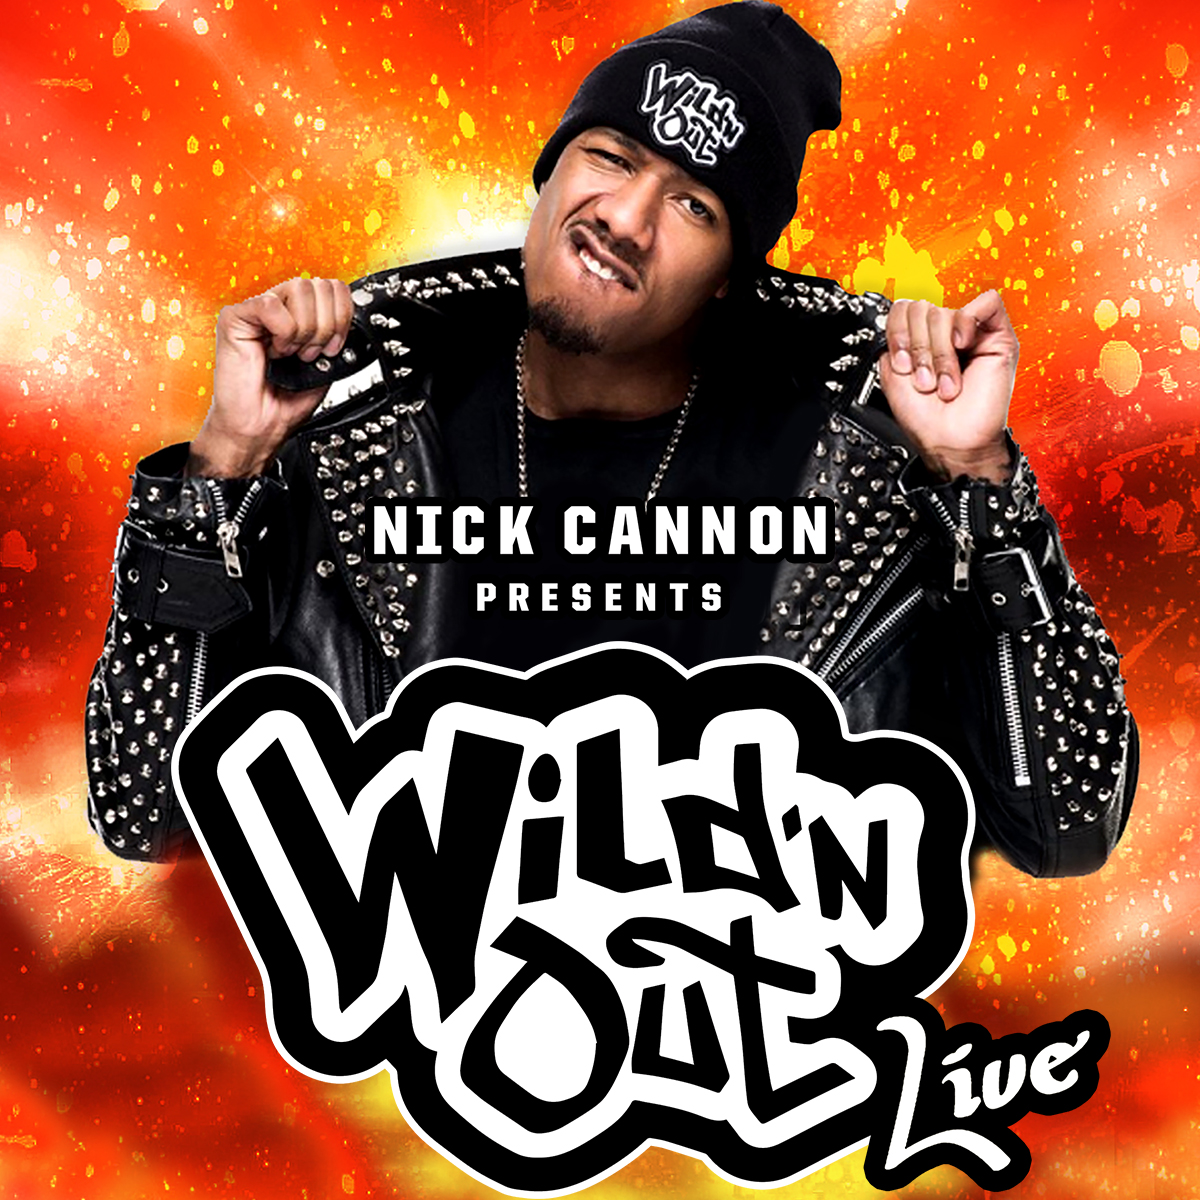 Listen to win 2 Tickets to Nick Cannon Presents: Wild 'N Out Live